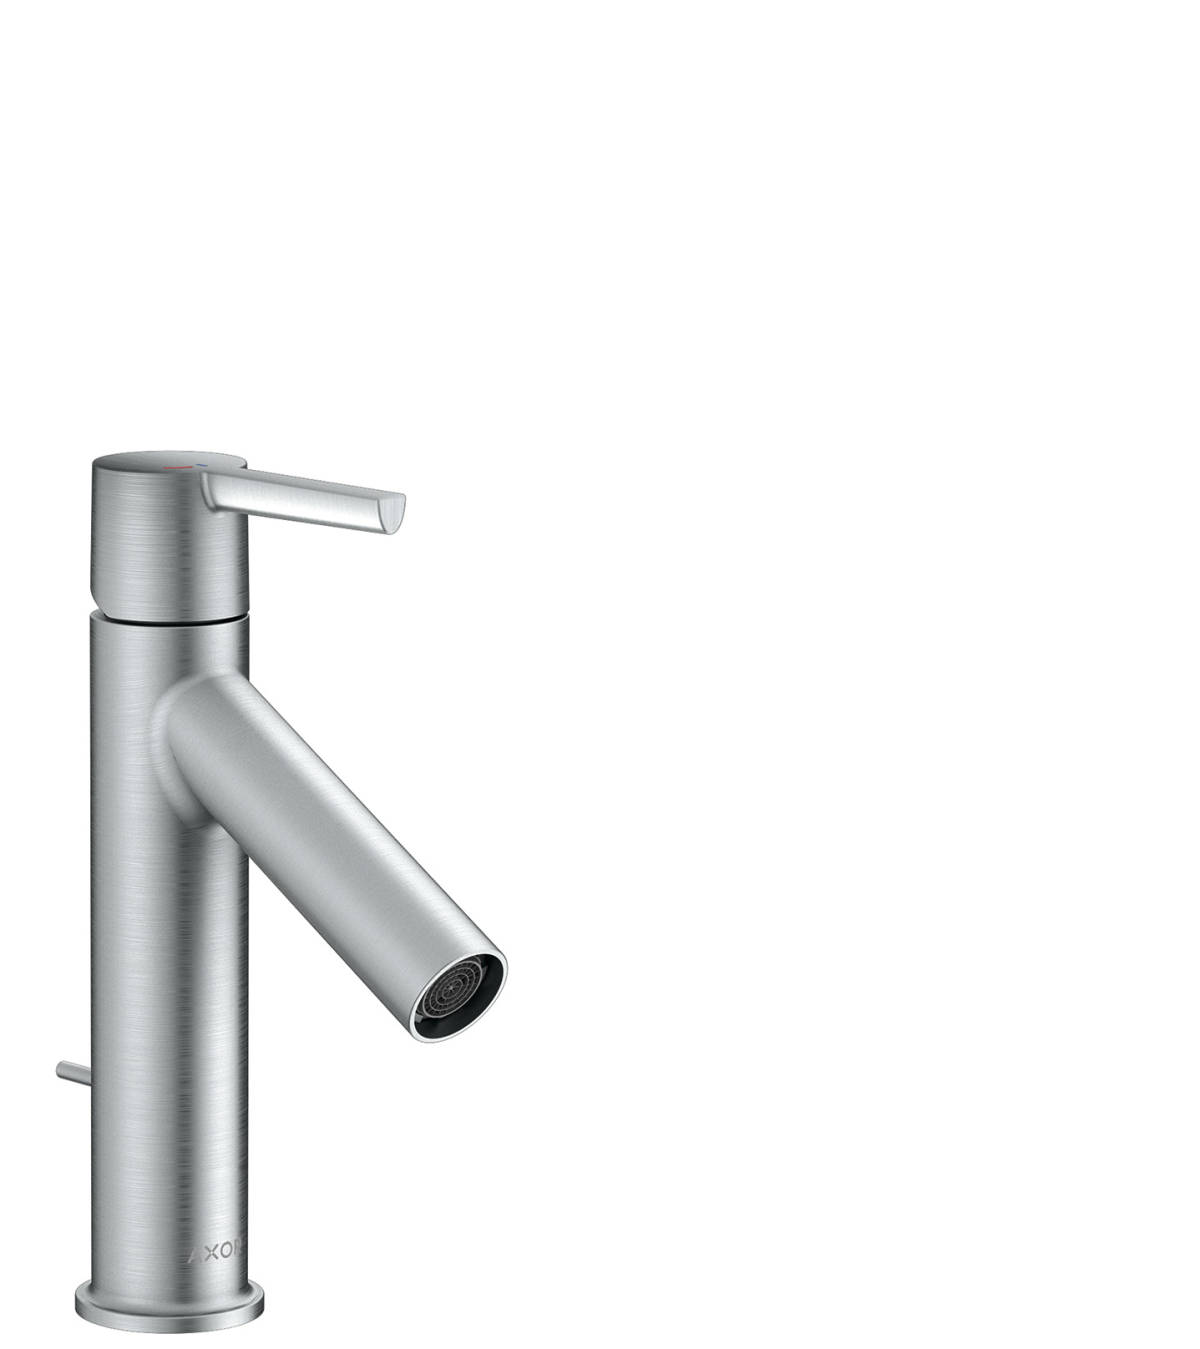 Single lever basin mixer 100 CoolStart with lever handle and pop-up waste set, Brushed Chrome, 10007260